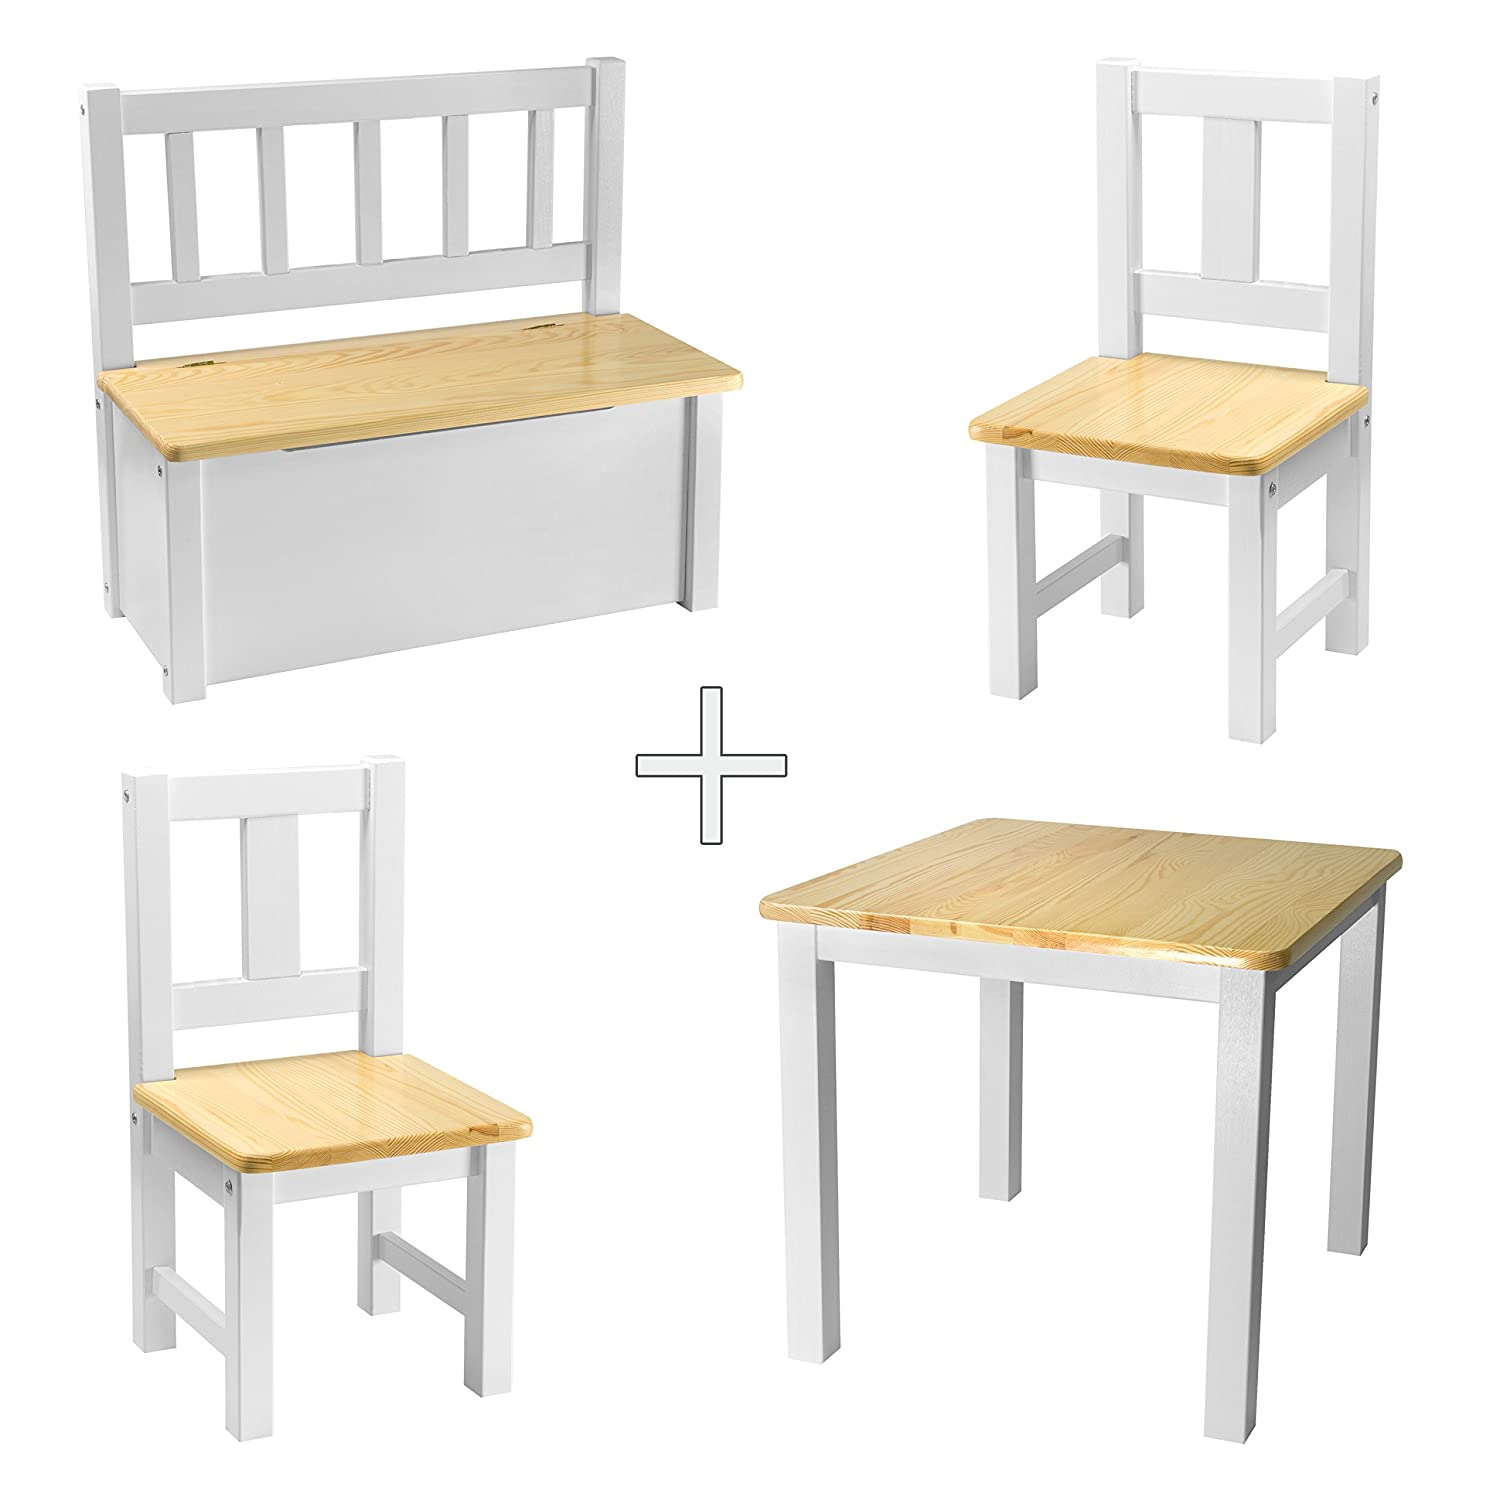 [Rabando] Children's Seating Set 1 Table and 2 kids chairs + 1 x Children's Wooden Bench White Transparent Varnish